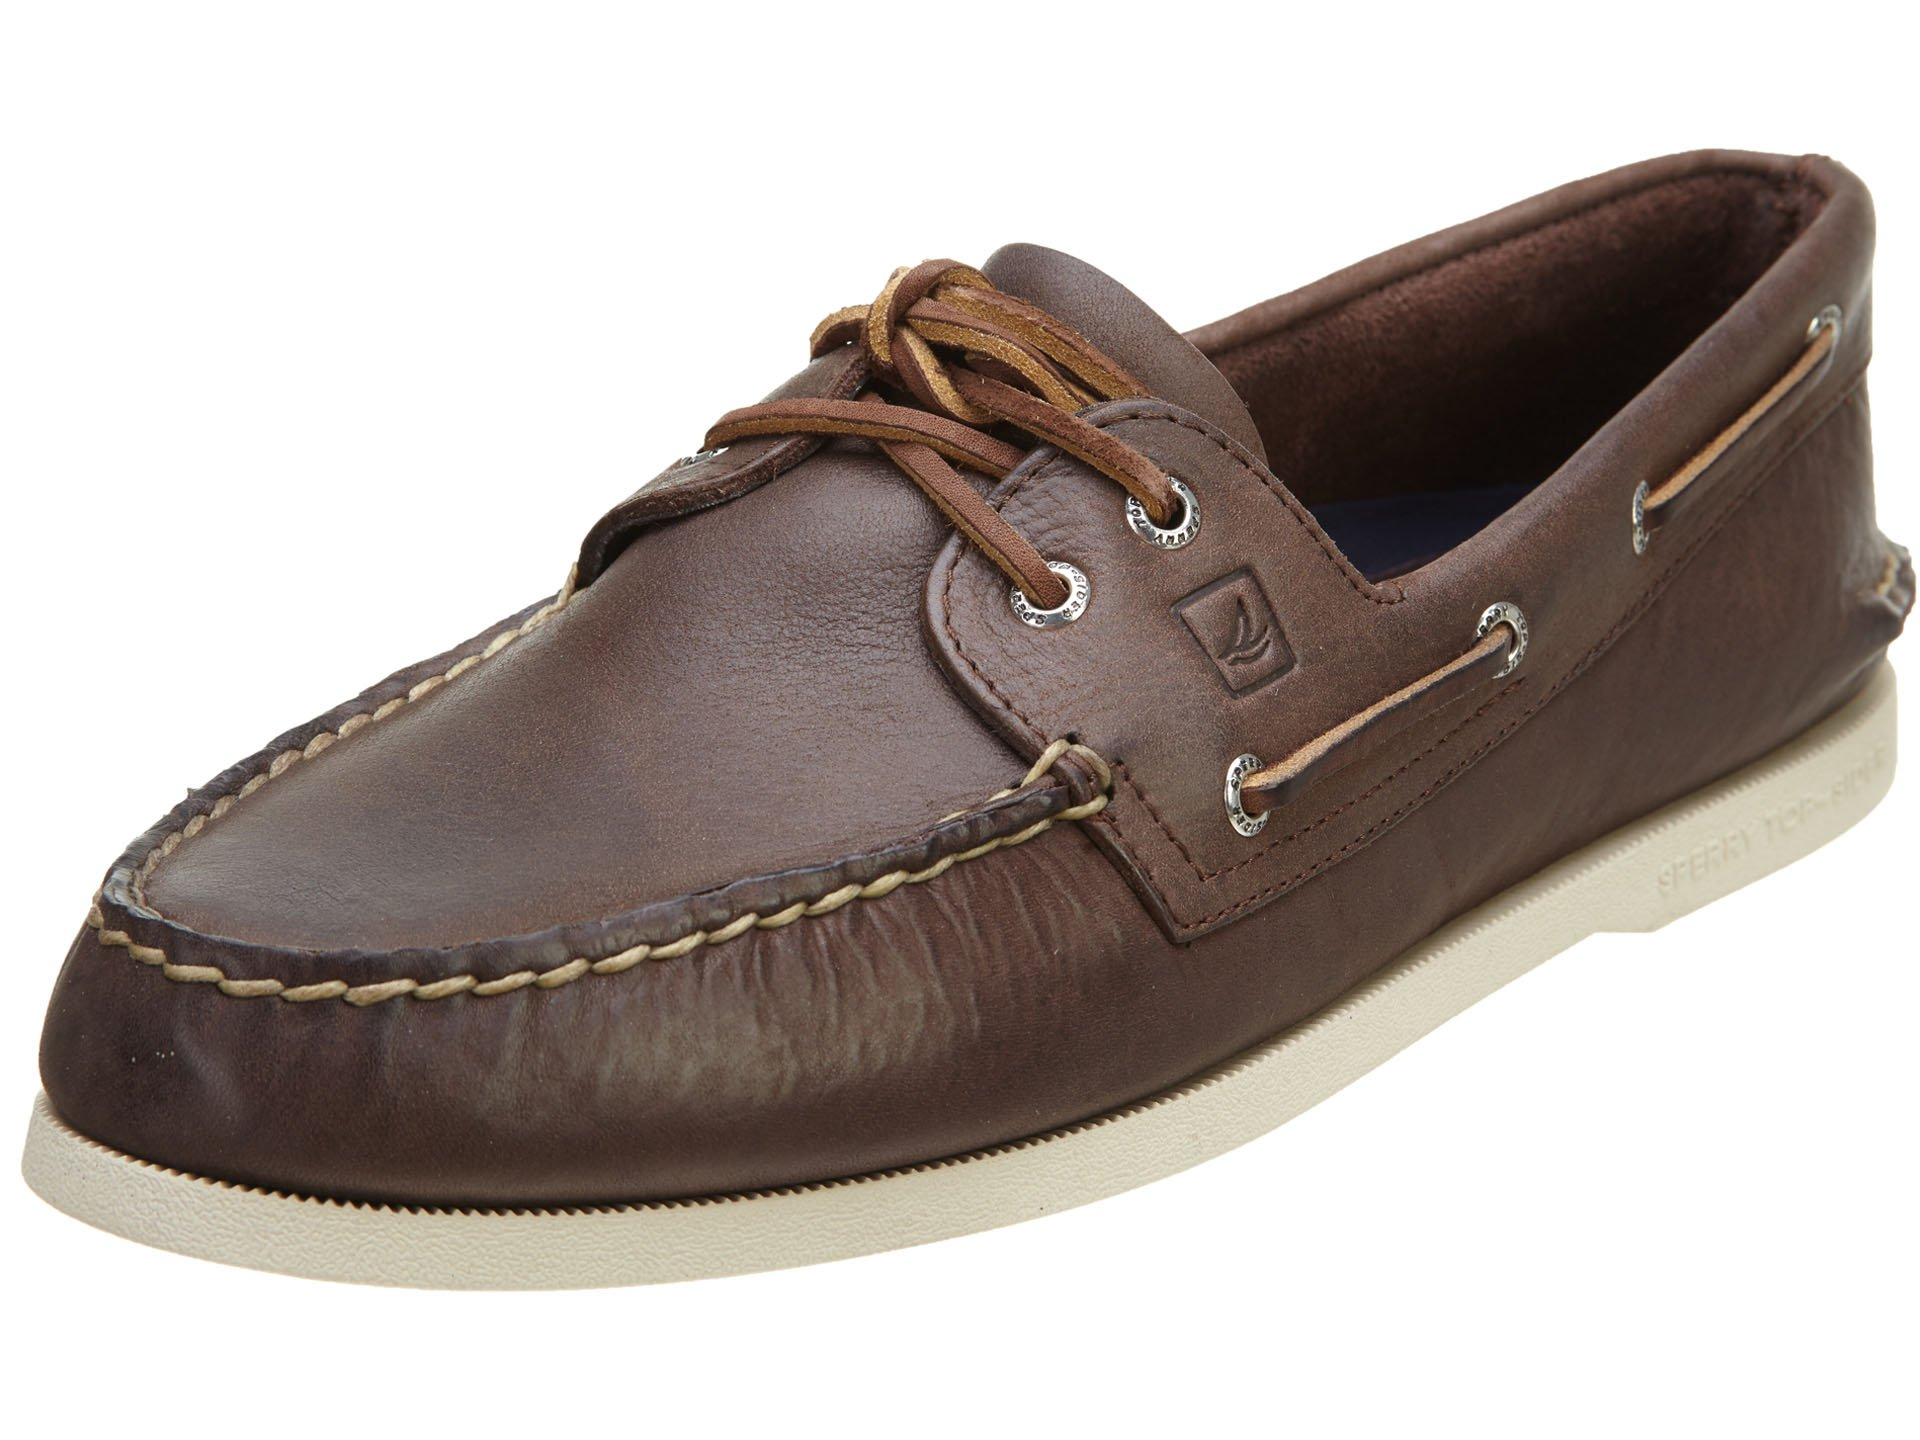 Sperry Top Sider A/O 2-Eye Mens Style: STS12413-Brown Size: 10.5 M US